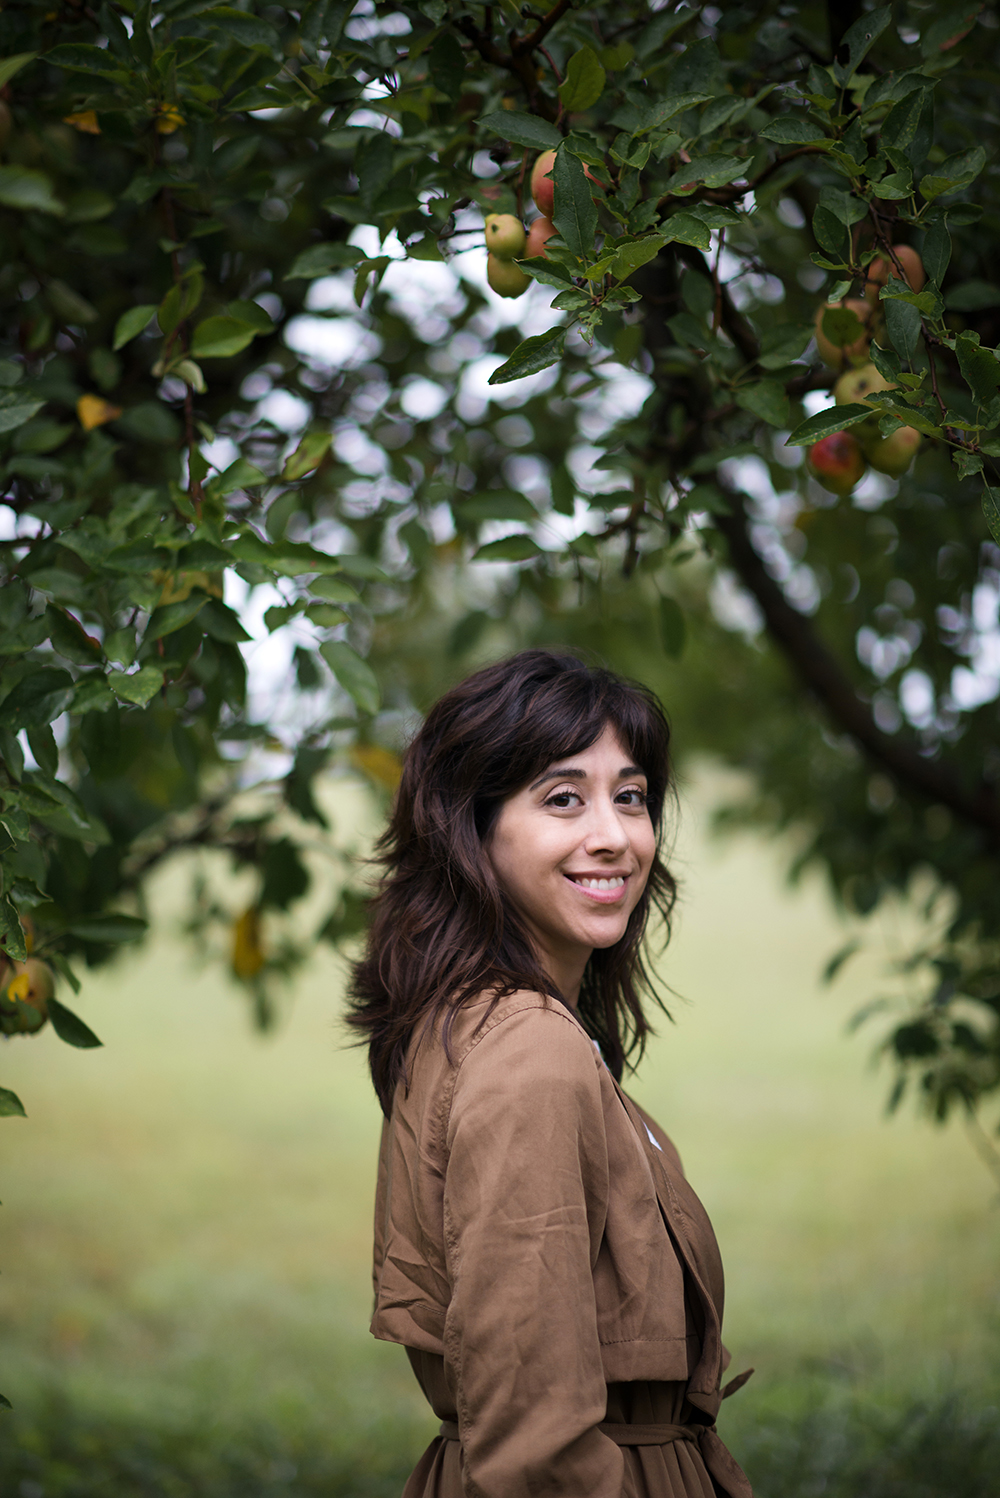 Teresa Floyd Portrait | Now, Forager | Teresa Floyd Photography